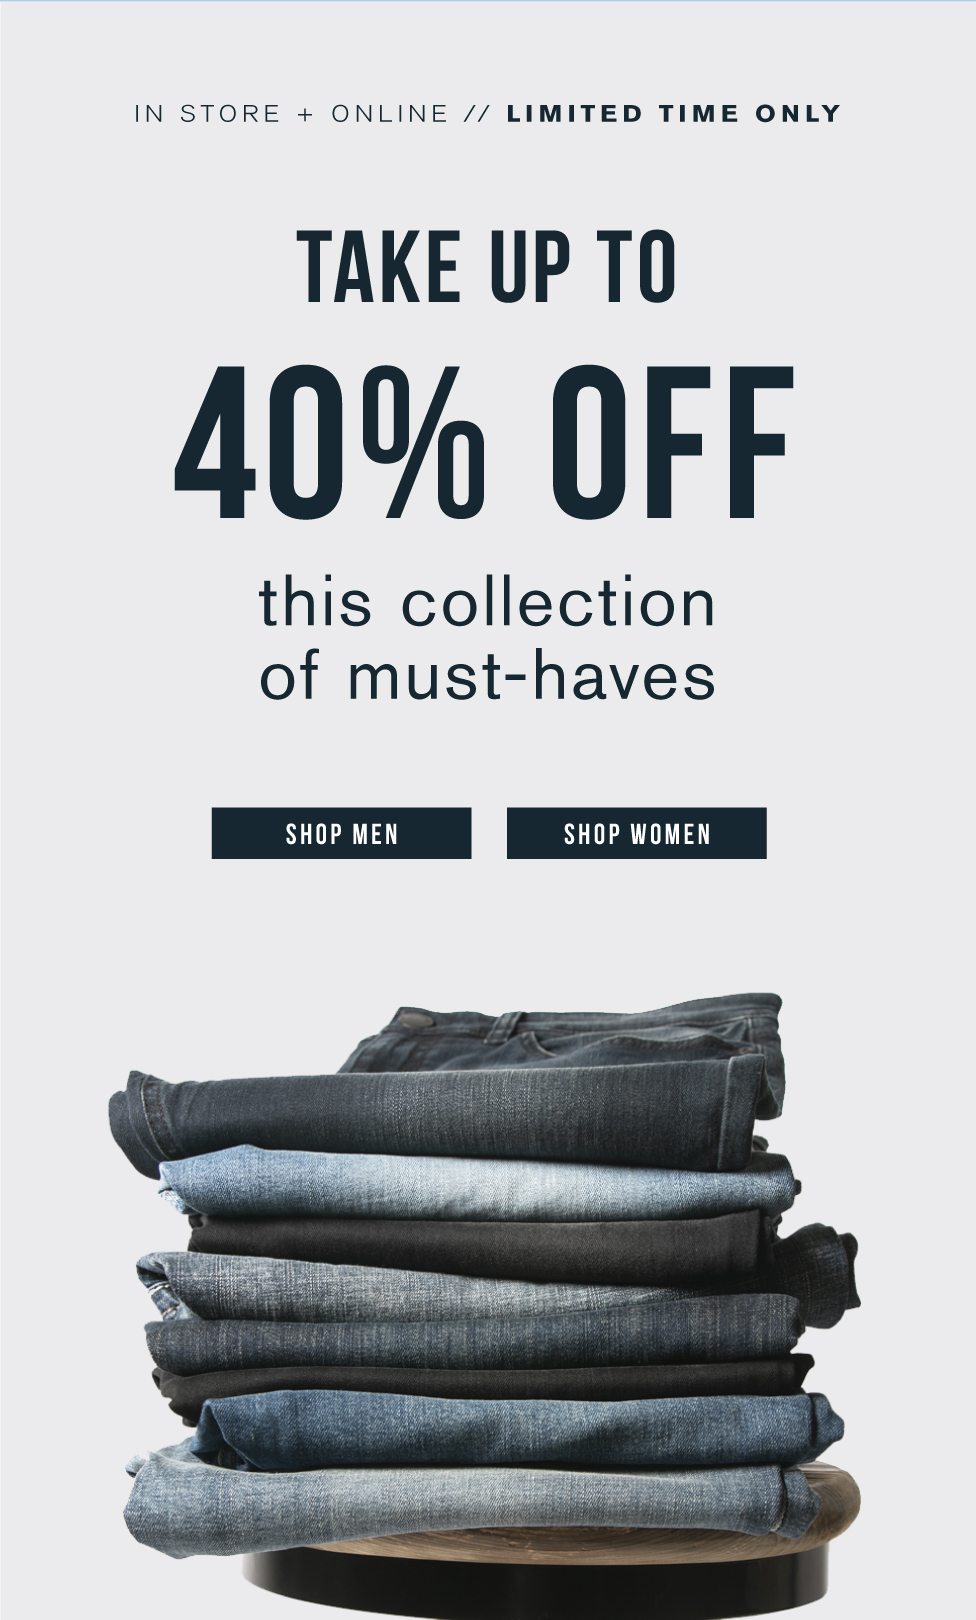 In store and online. Limited time only. Take up to 40% off this collection of must-haves.